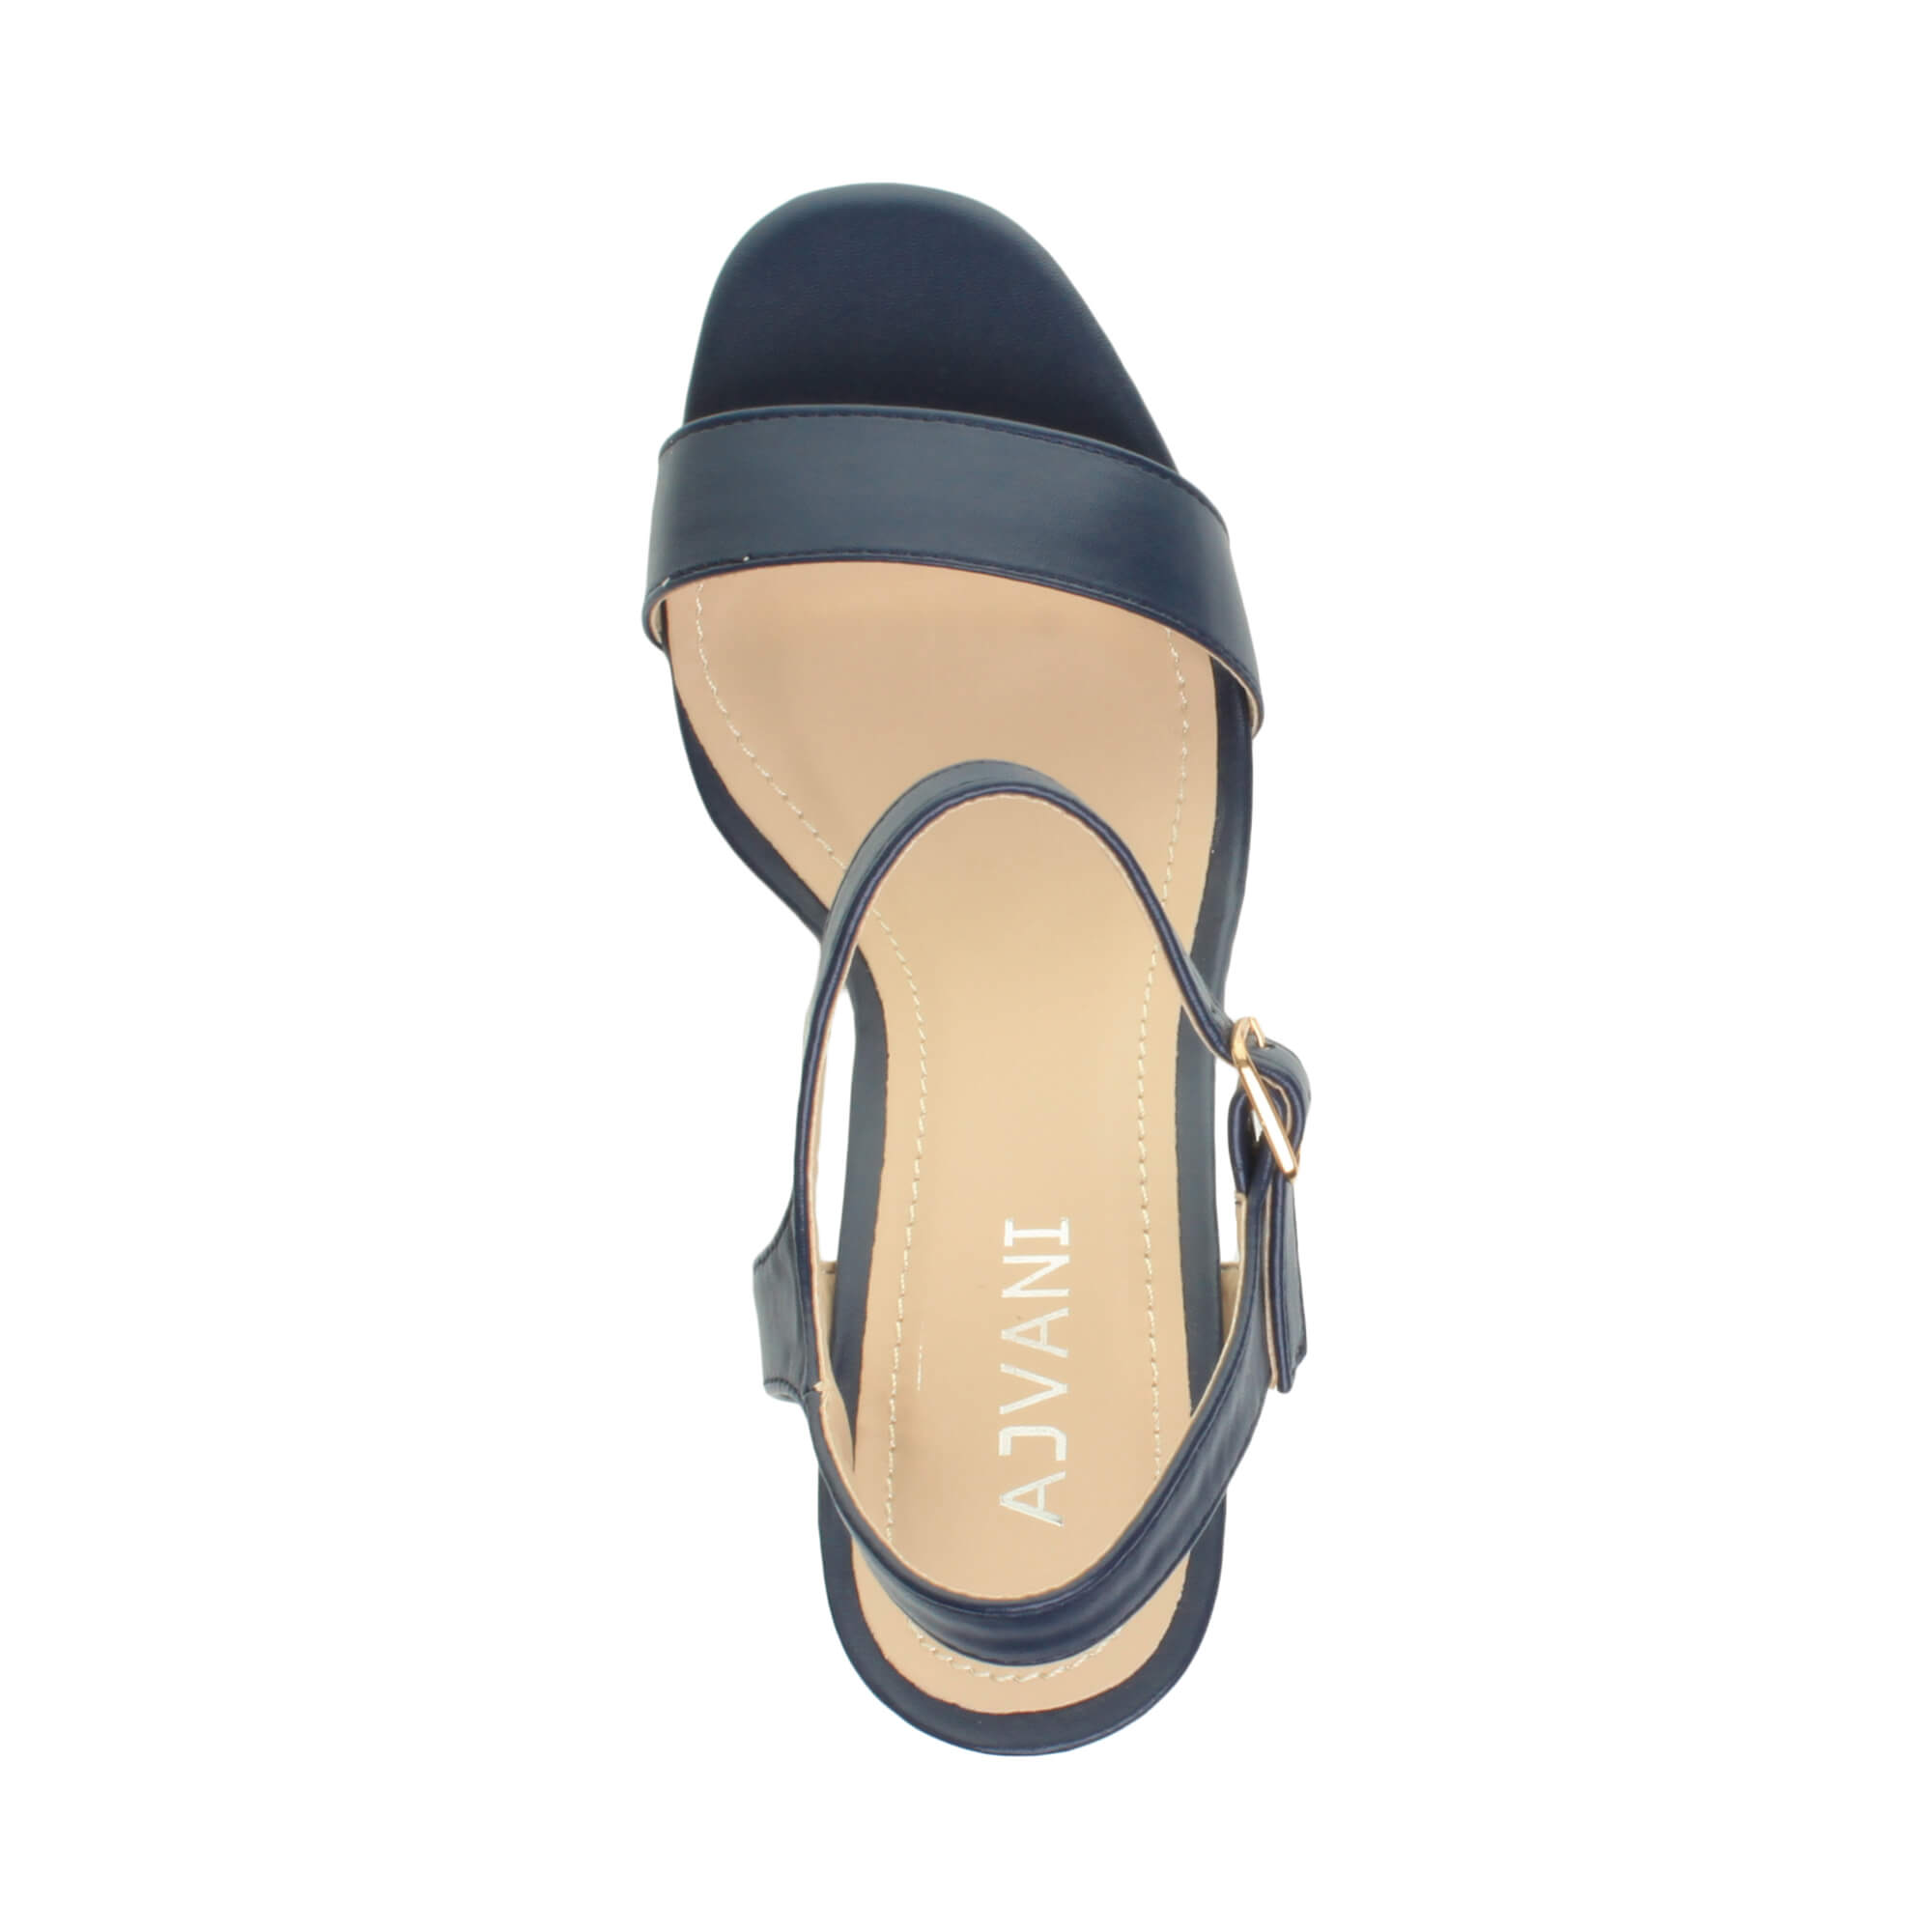 WOMENS-LADIES-HIGH-HEEL-BUCKLE-STRAPPY-BASIC-BARELY-THERE-SANDALS-SHOES-SIZE thumbnail 70